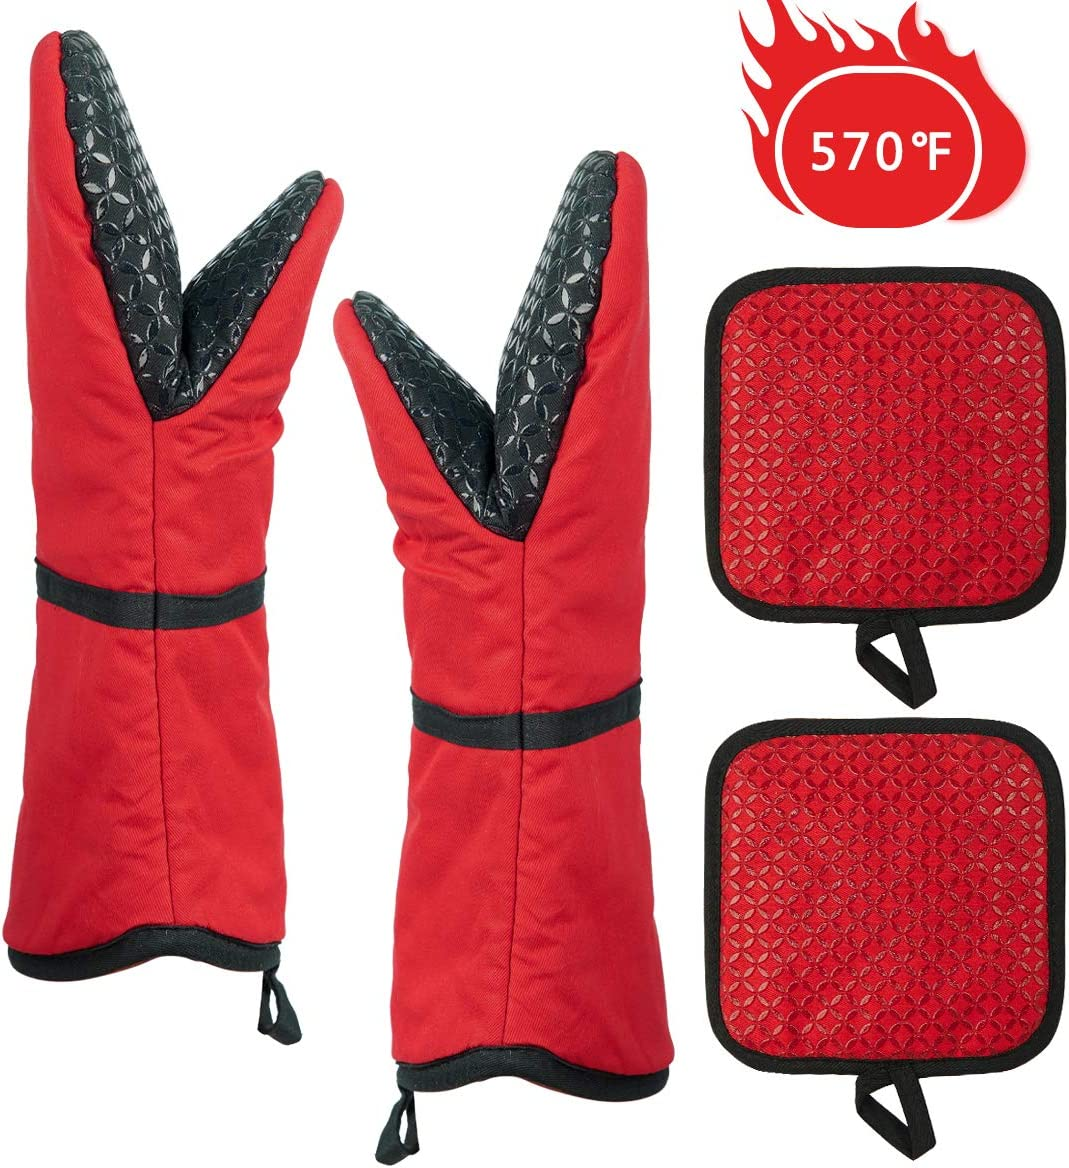 Oven Mitt and Pot Holders 4 Pcs, Oven Mitts Silicone Heat Resistant to 570℉, Kitchen Mittens and Pot Holder Set, Non-Slip Oven Gloves with Cotton Lining for BBQ Cooking Baking, Red